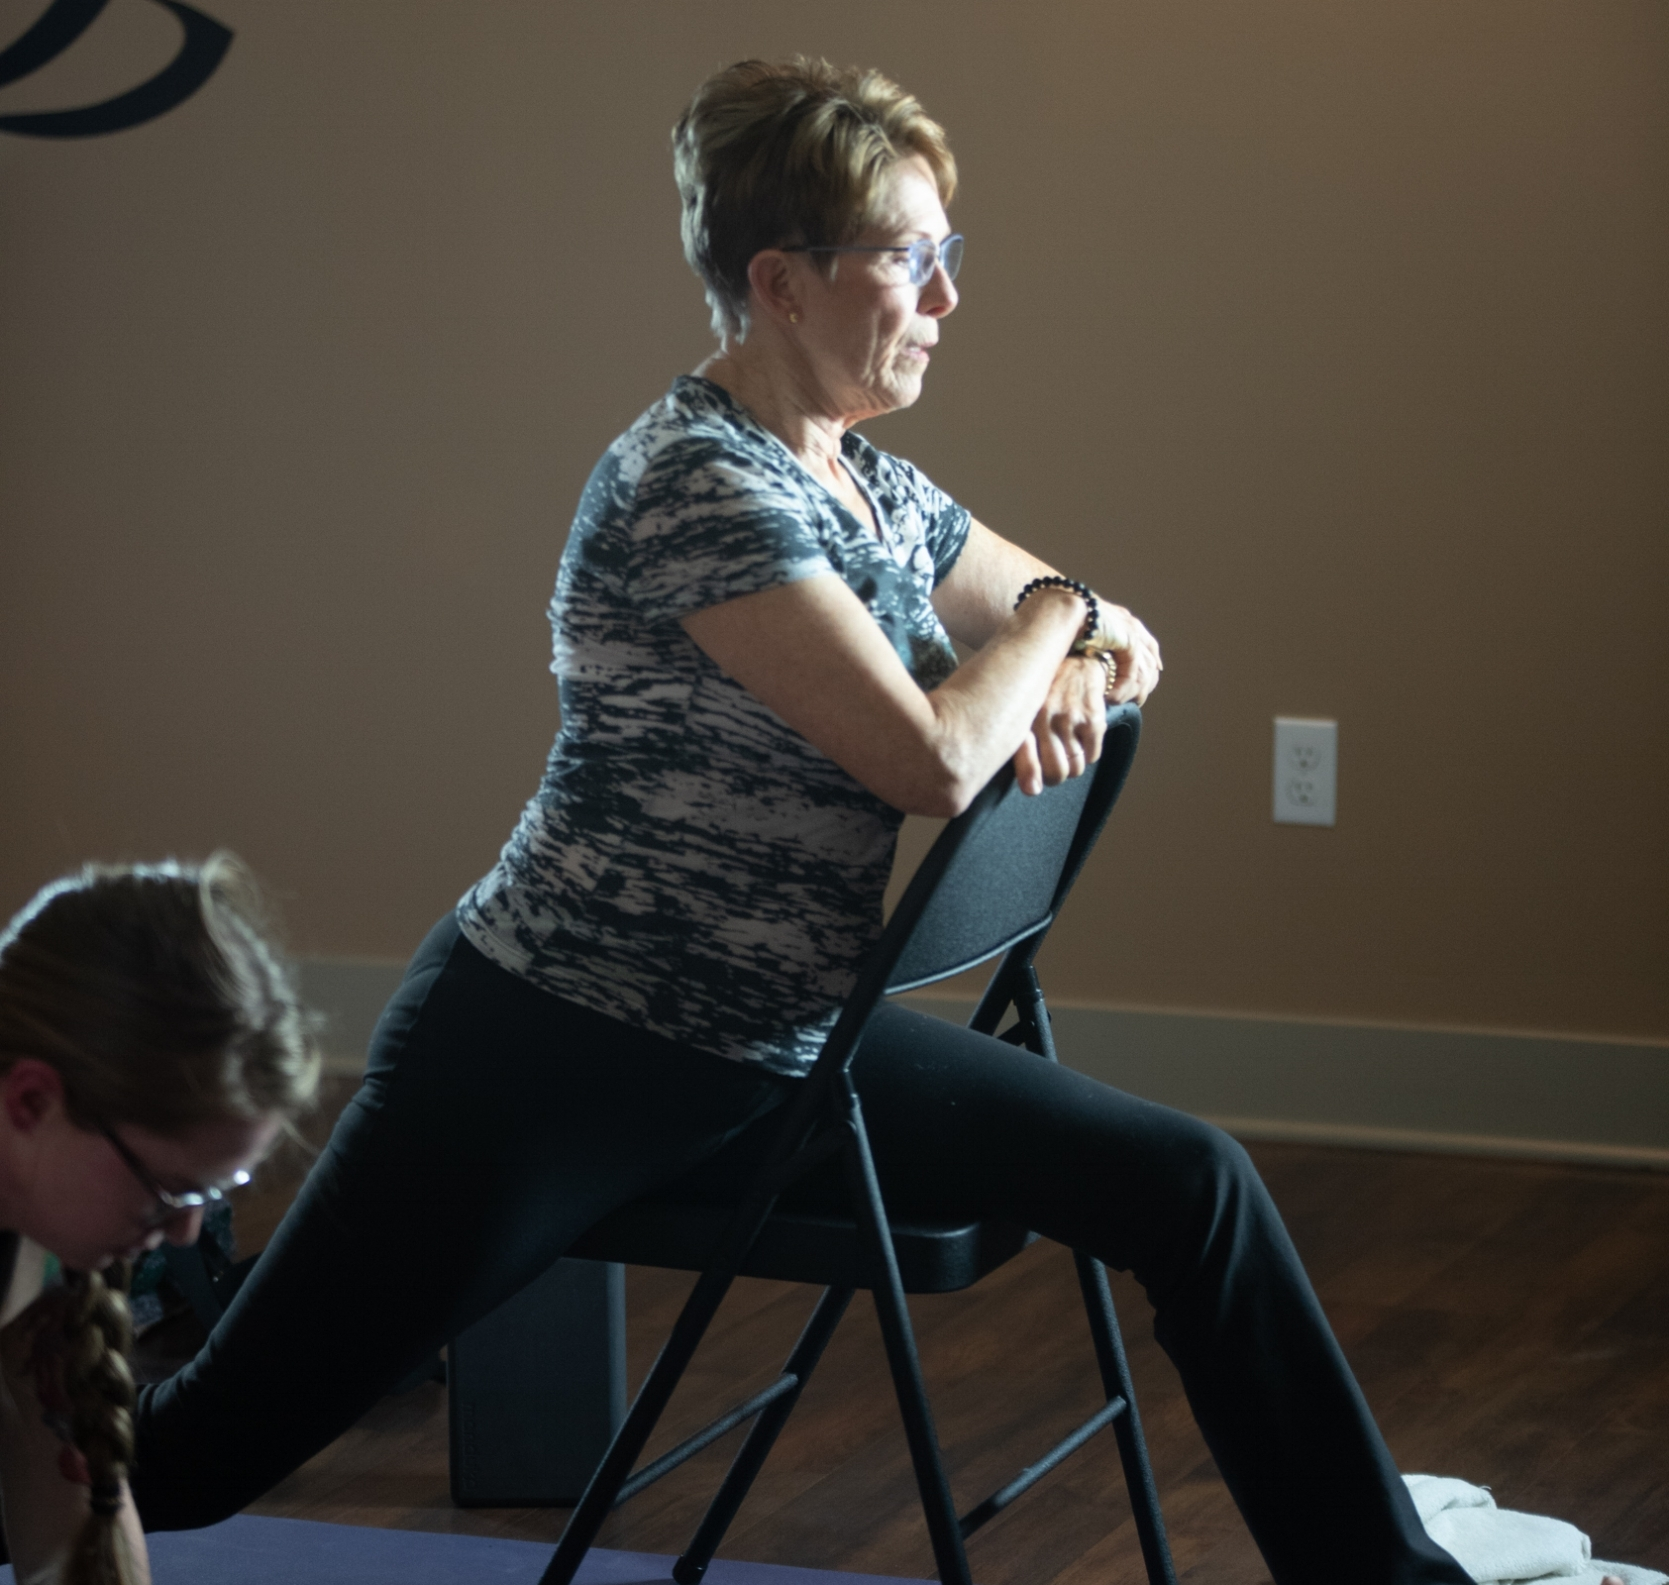 Adapted / Gentle Yoga - An instruction-heavy class that moves at a gentle pace and incorporates props and modifications to adapt to your needs – chairs, blocks, bolsters, blankets, and straps and all!This class is accessible and adapts to anyone with a physical restriction or contraindication. Appropriate for all levels including first-timers and those with limitations.For adults or kids 15 and up or under 15 with an adult practicing too.